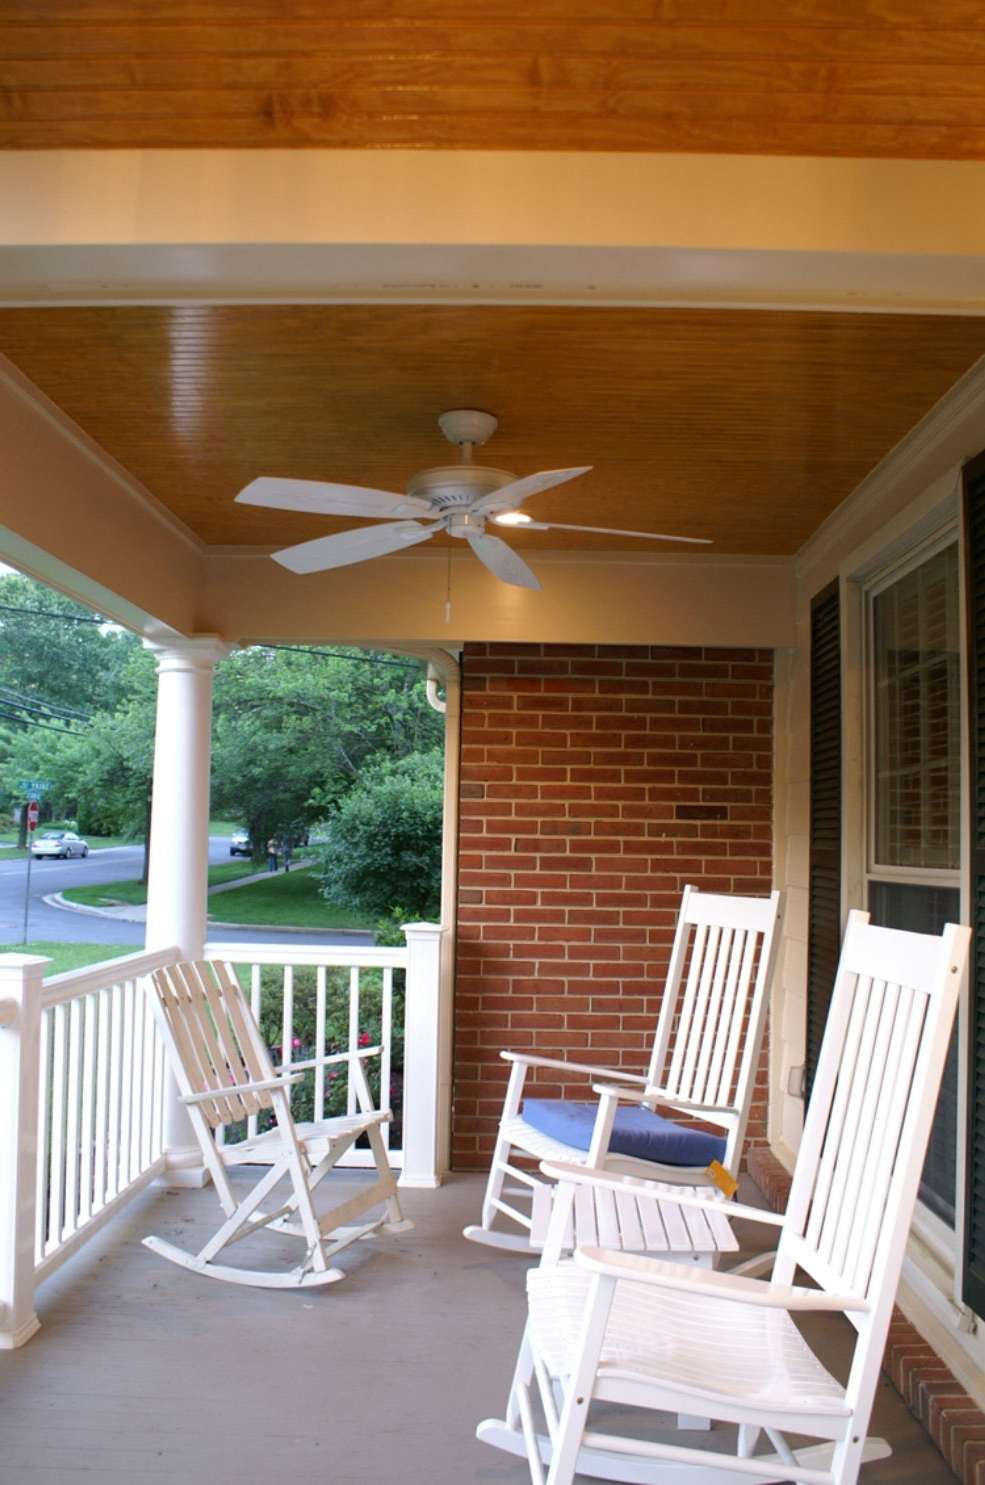 Most Recently Released Outdoor Patio Ceiling Fans With Lights For Gorgeous Outdoor Patio Ceiling Fans Pleasant Porch Home Furniture (View 6 of 20)